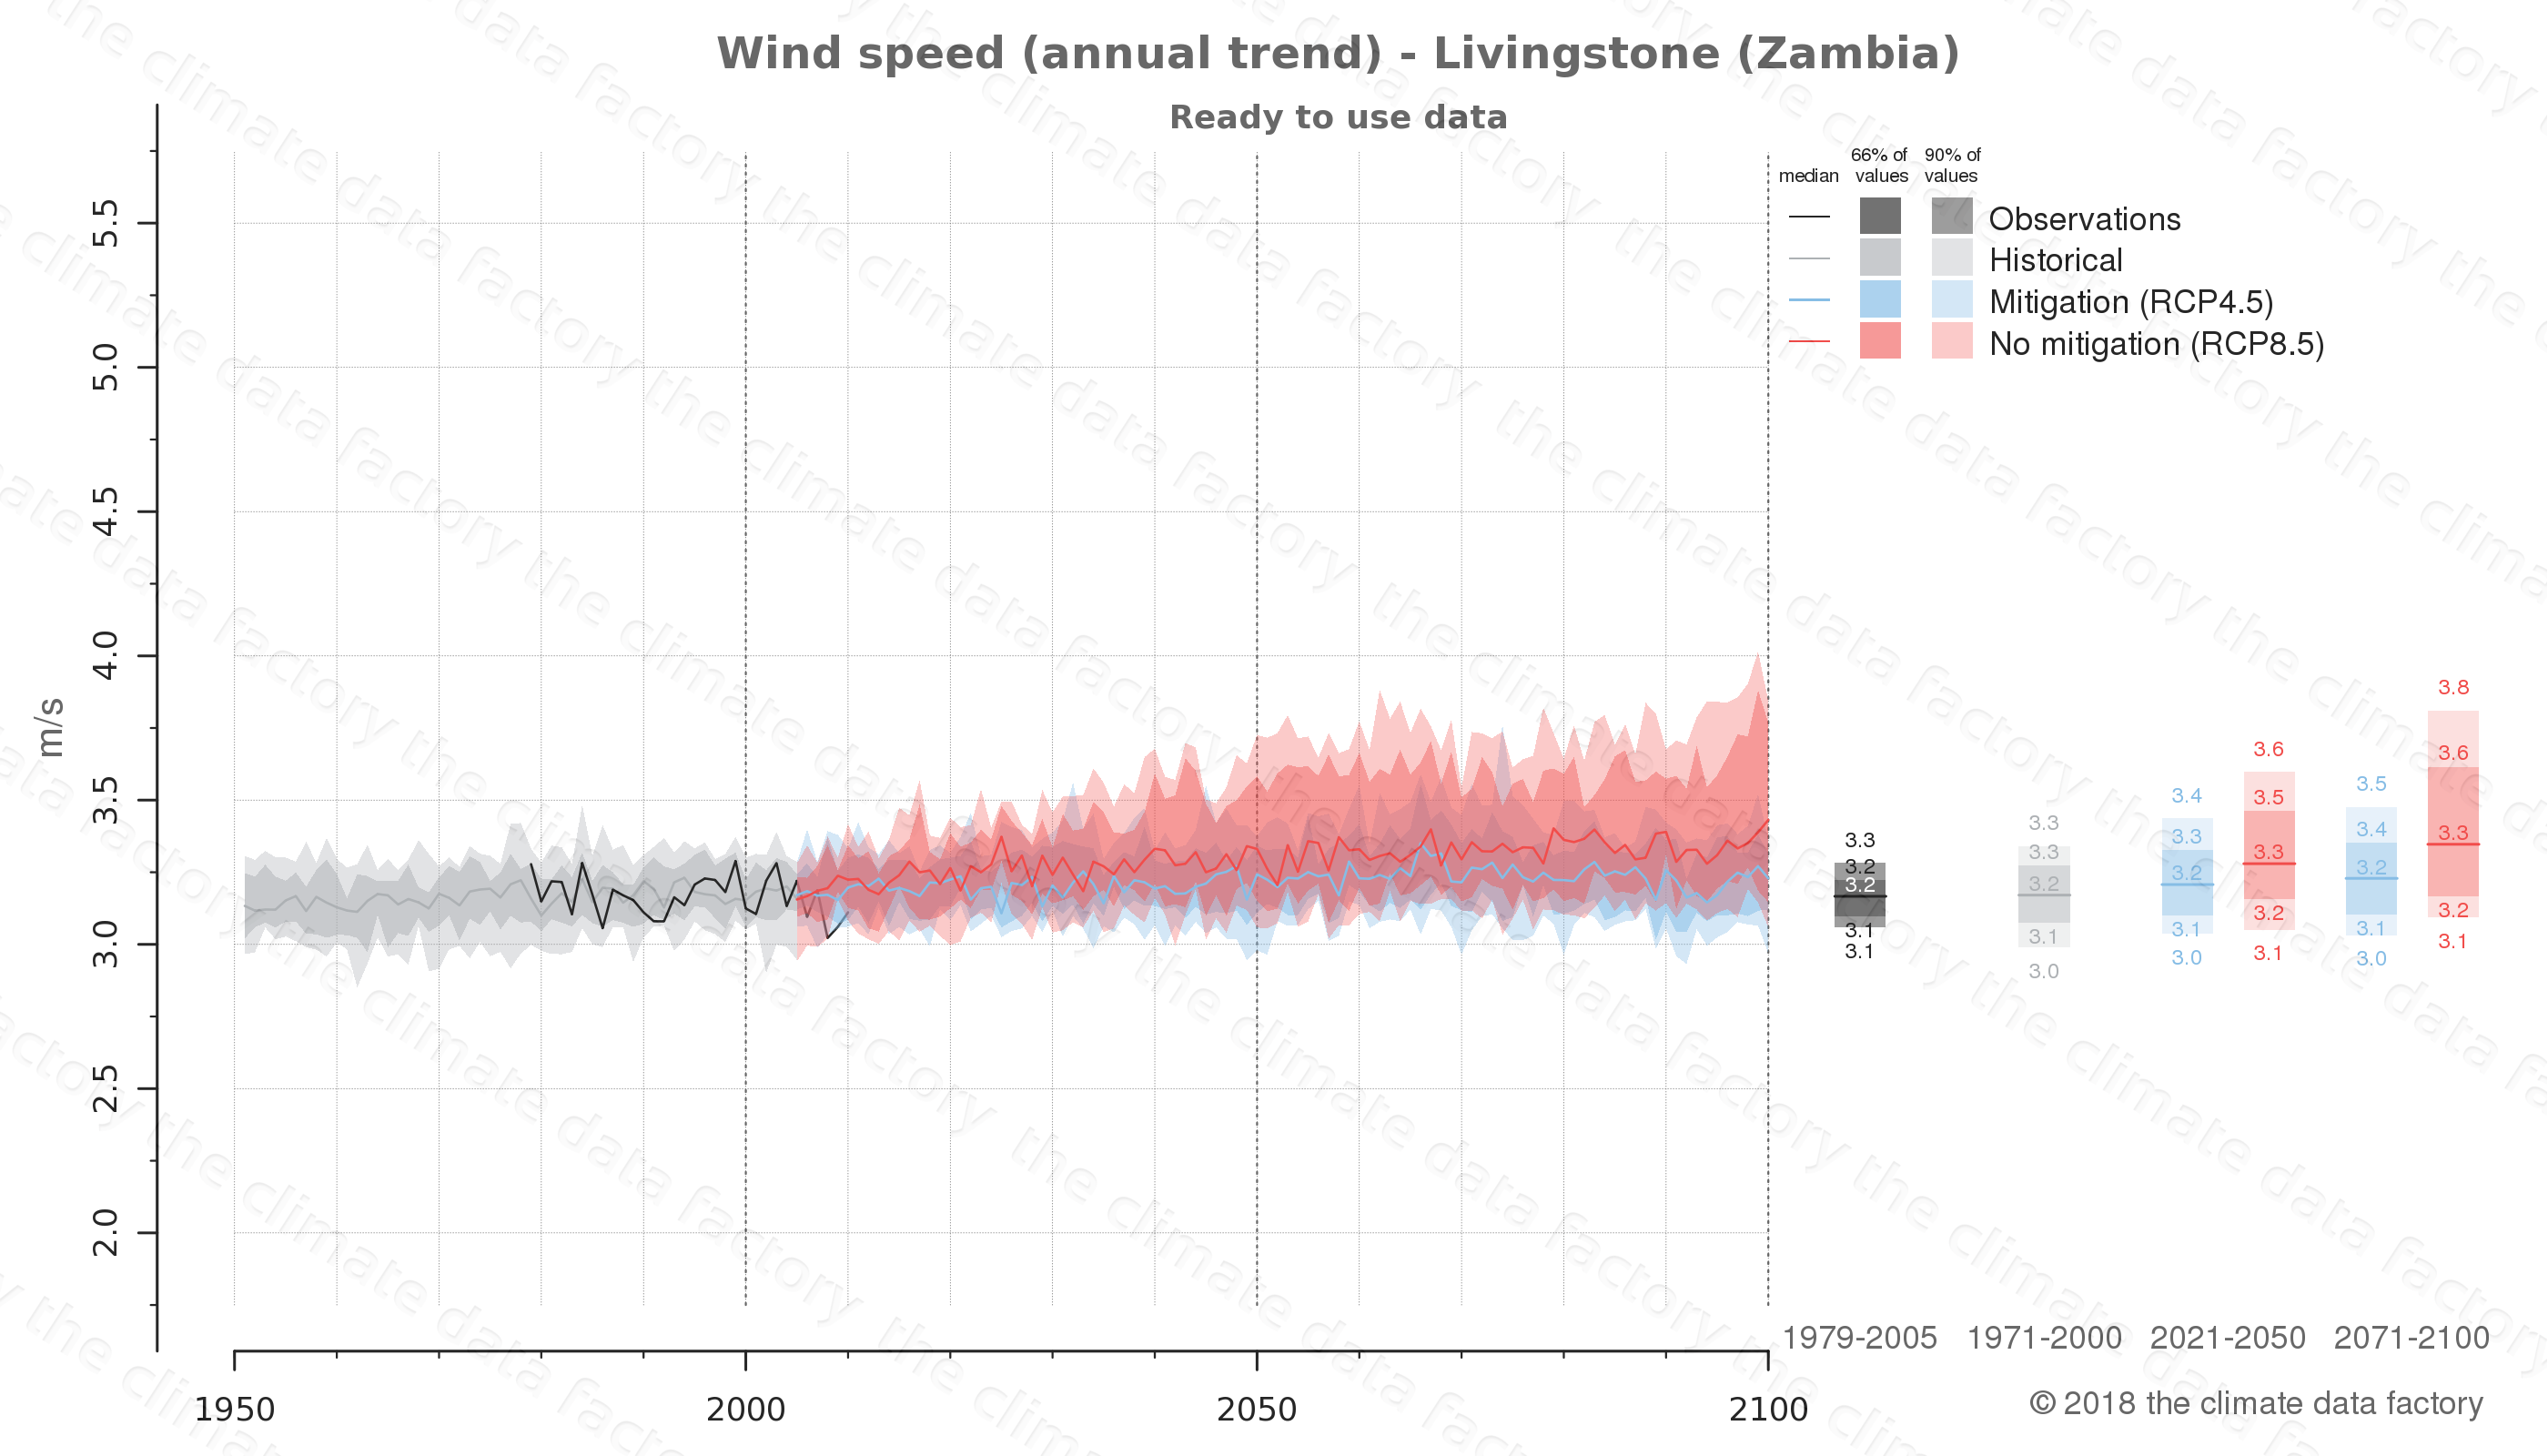 climate change data policy adaptation climate graph city data wind-speed livingstone zambia